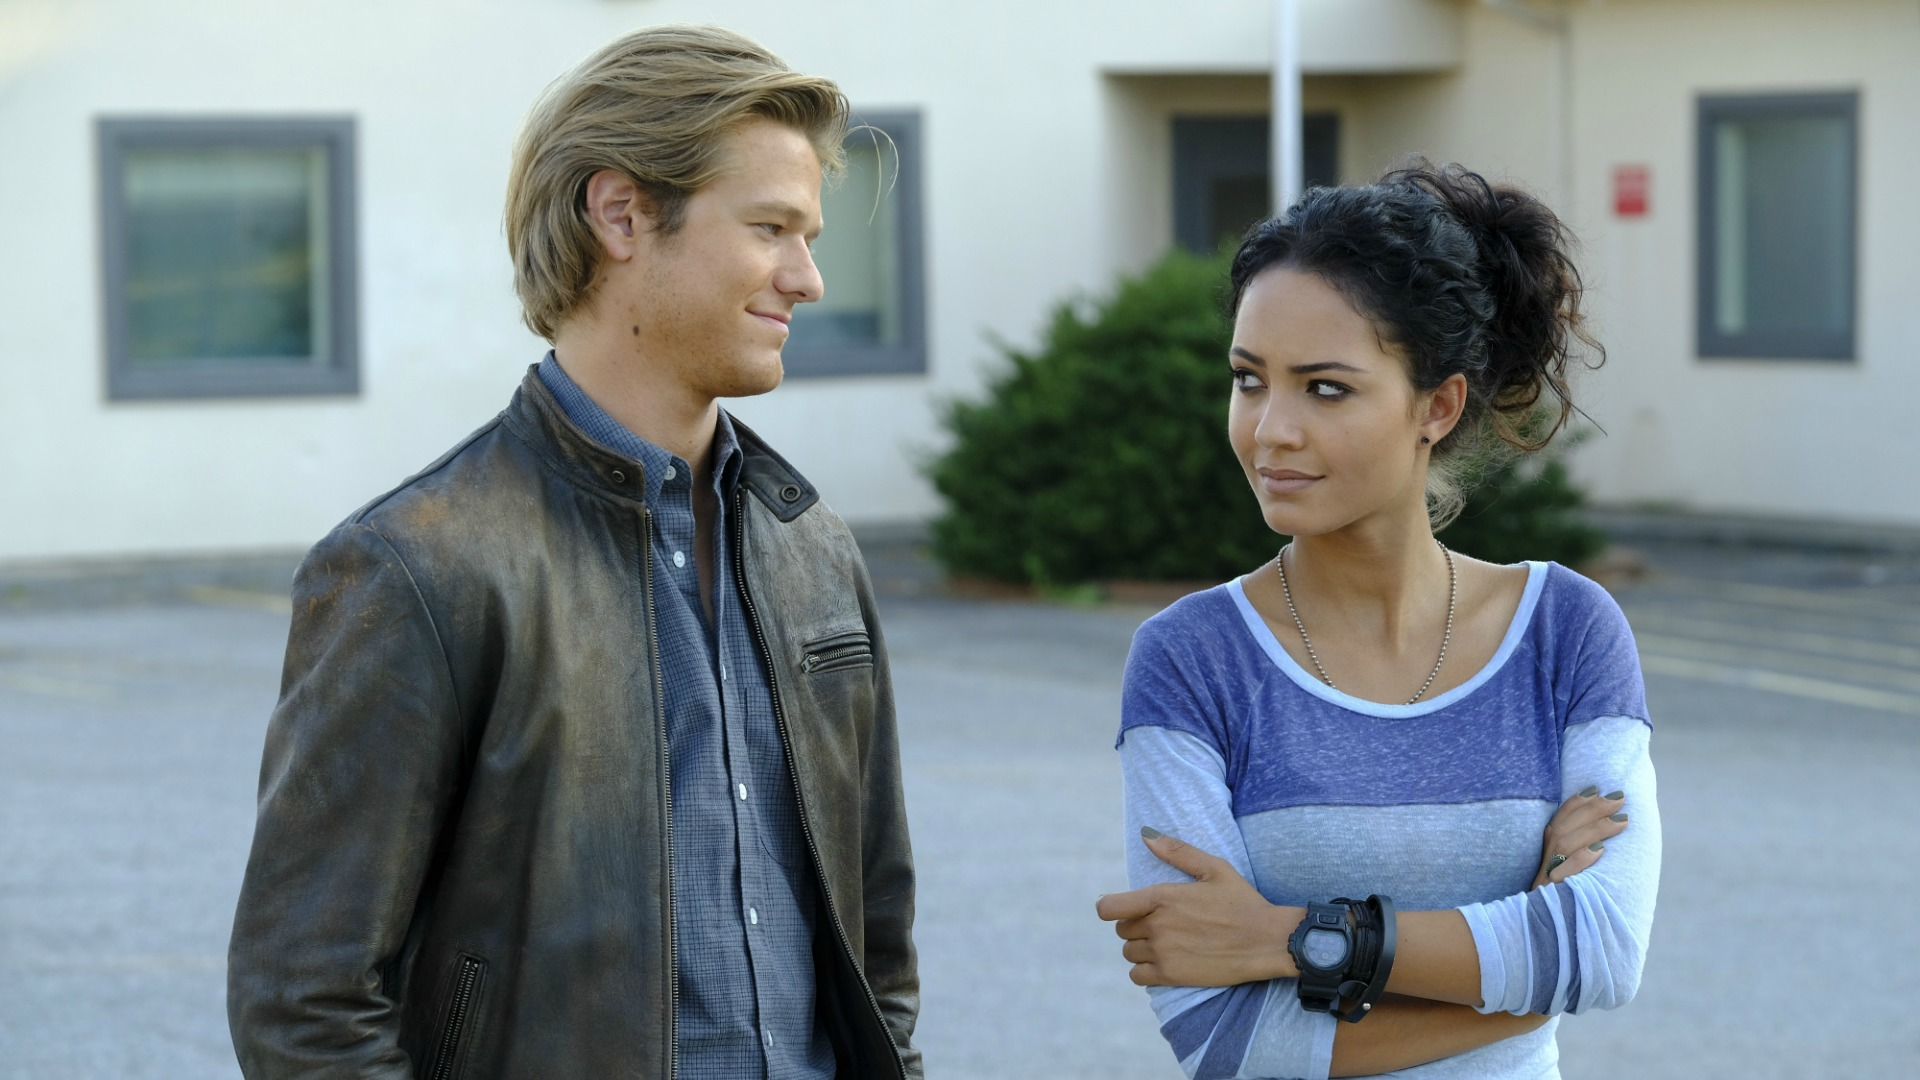 MacGyver gives Riley a knowing look.